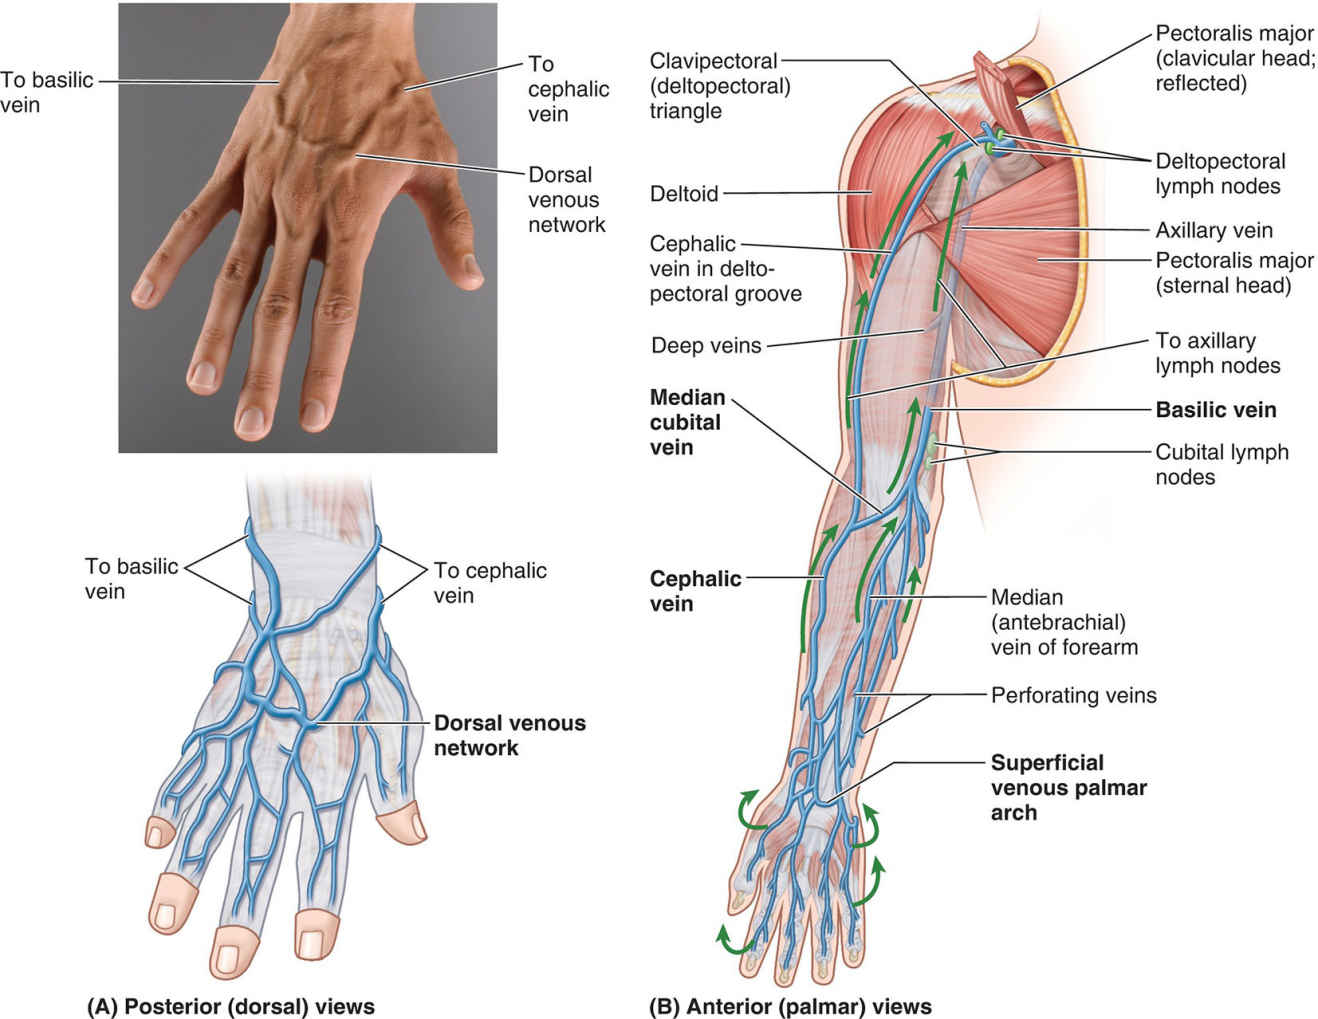 Superficial Veins And Lymph Nodes Of Upper Limb Anatomical Diagram